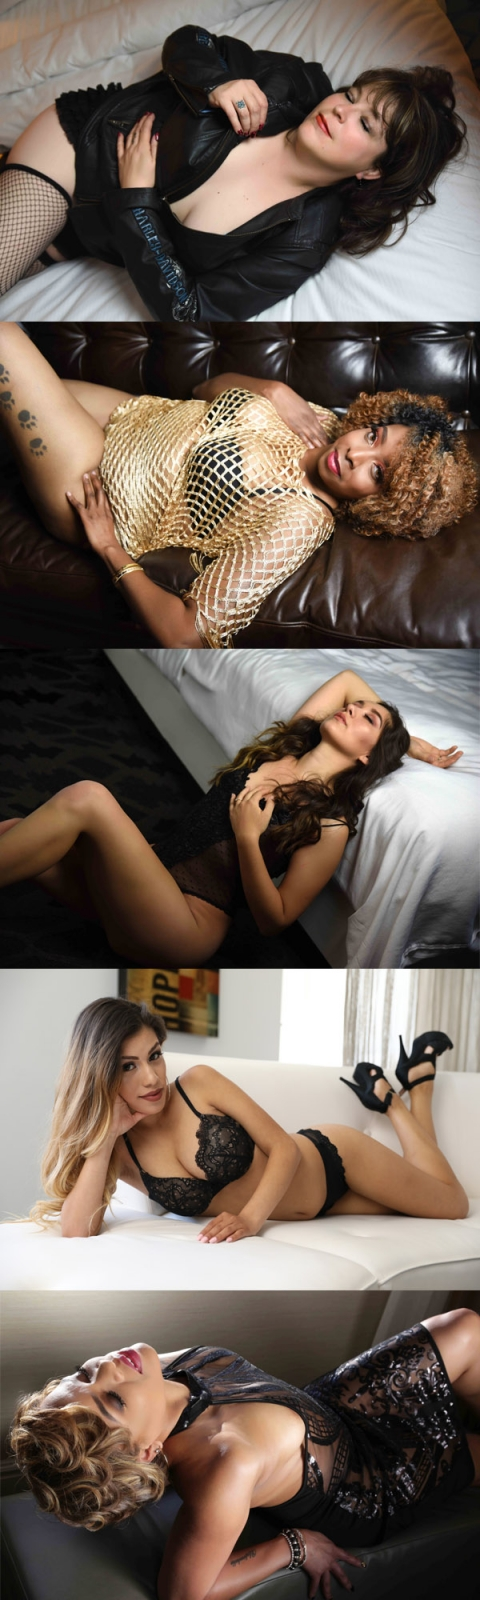 Why you deserve a boudoir photo shoot? CYS previous clients